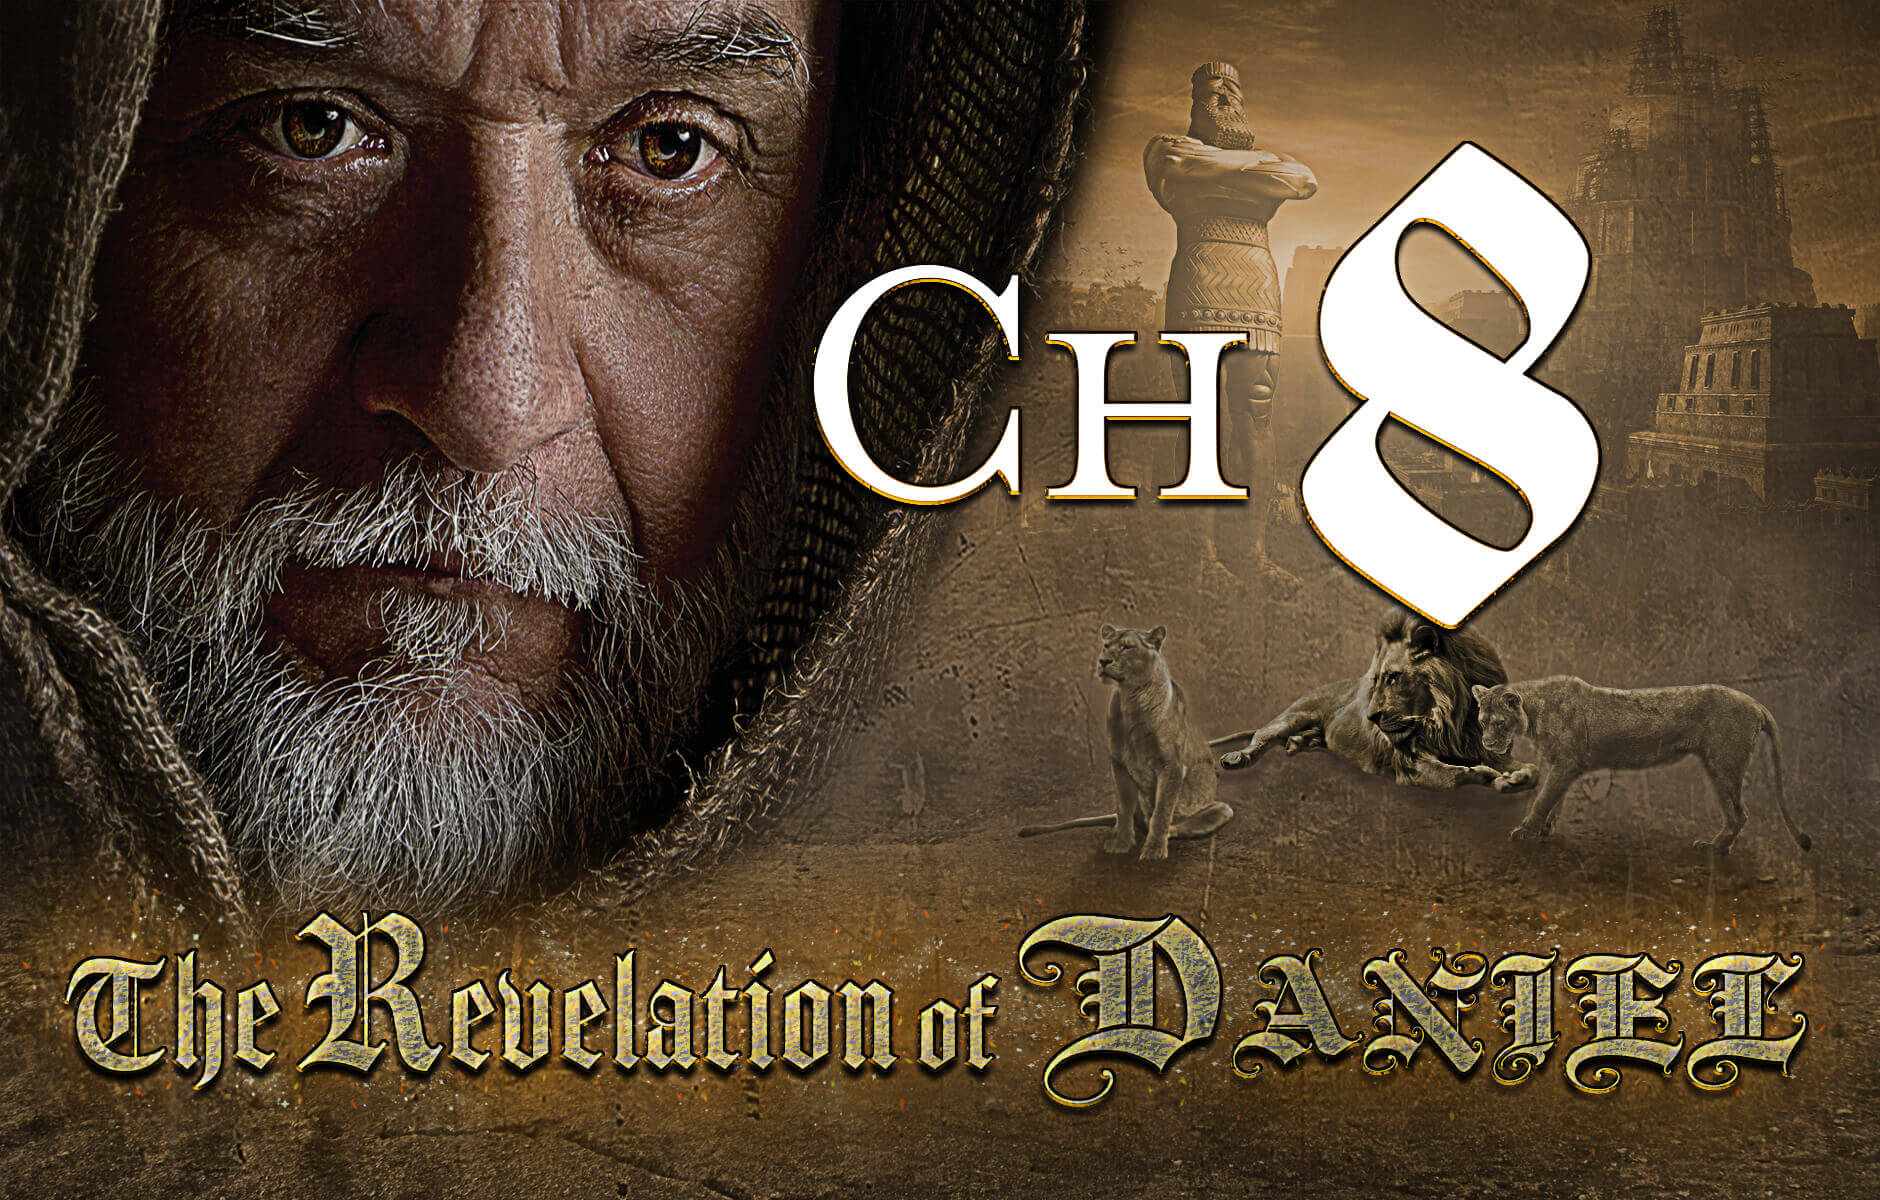 The Revelation of Daniel Chapter 8